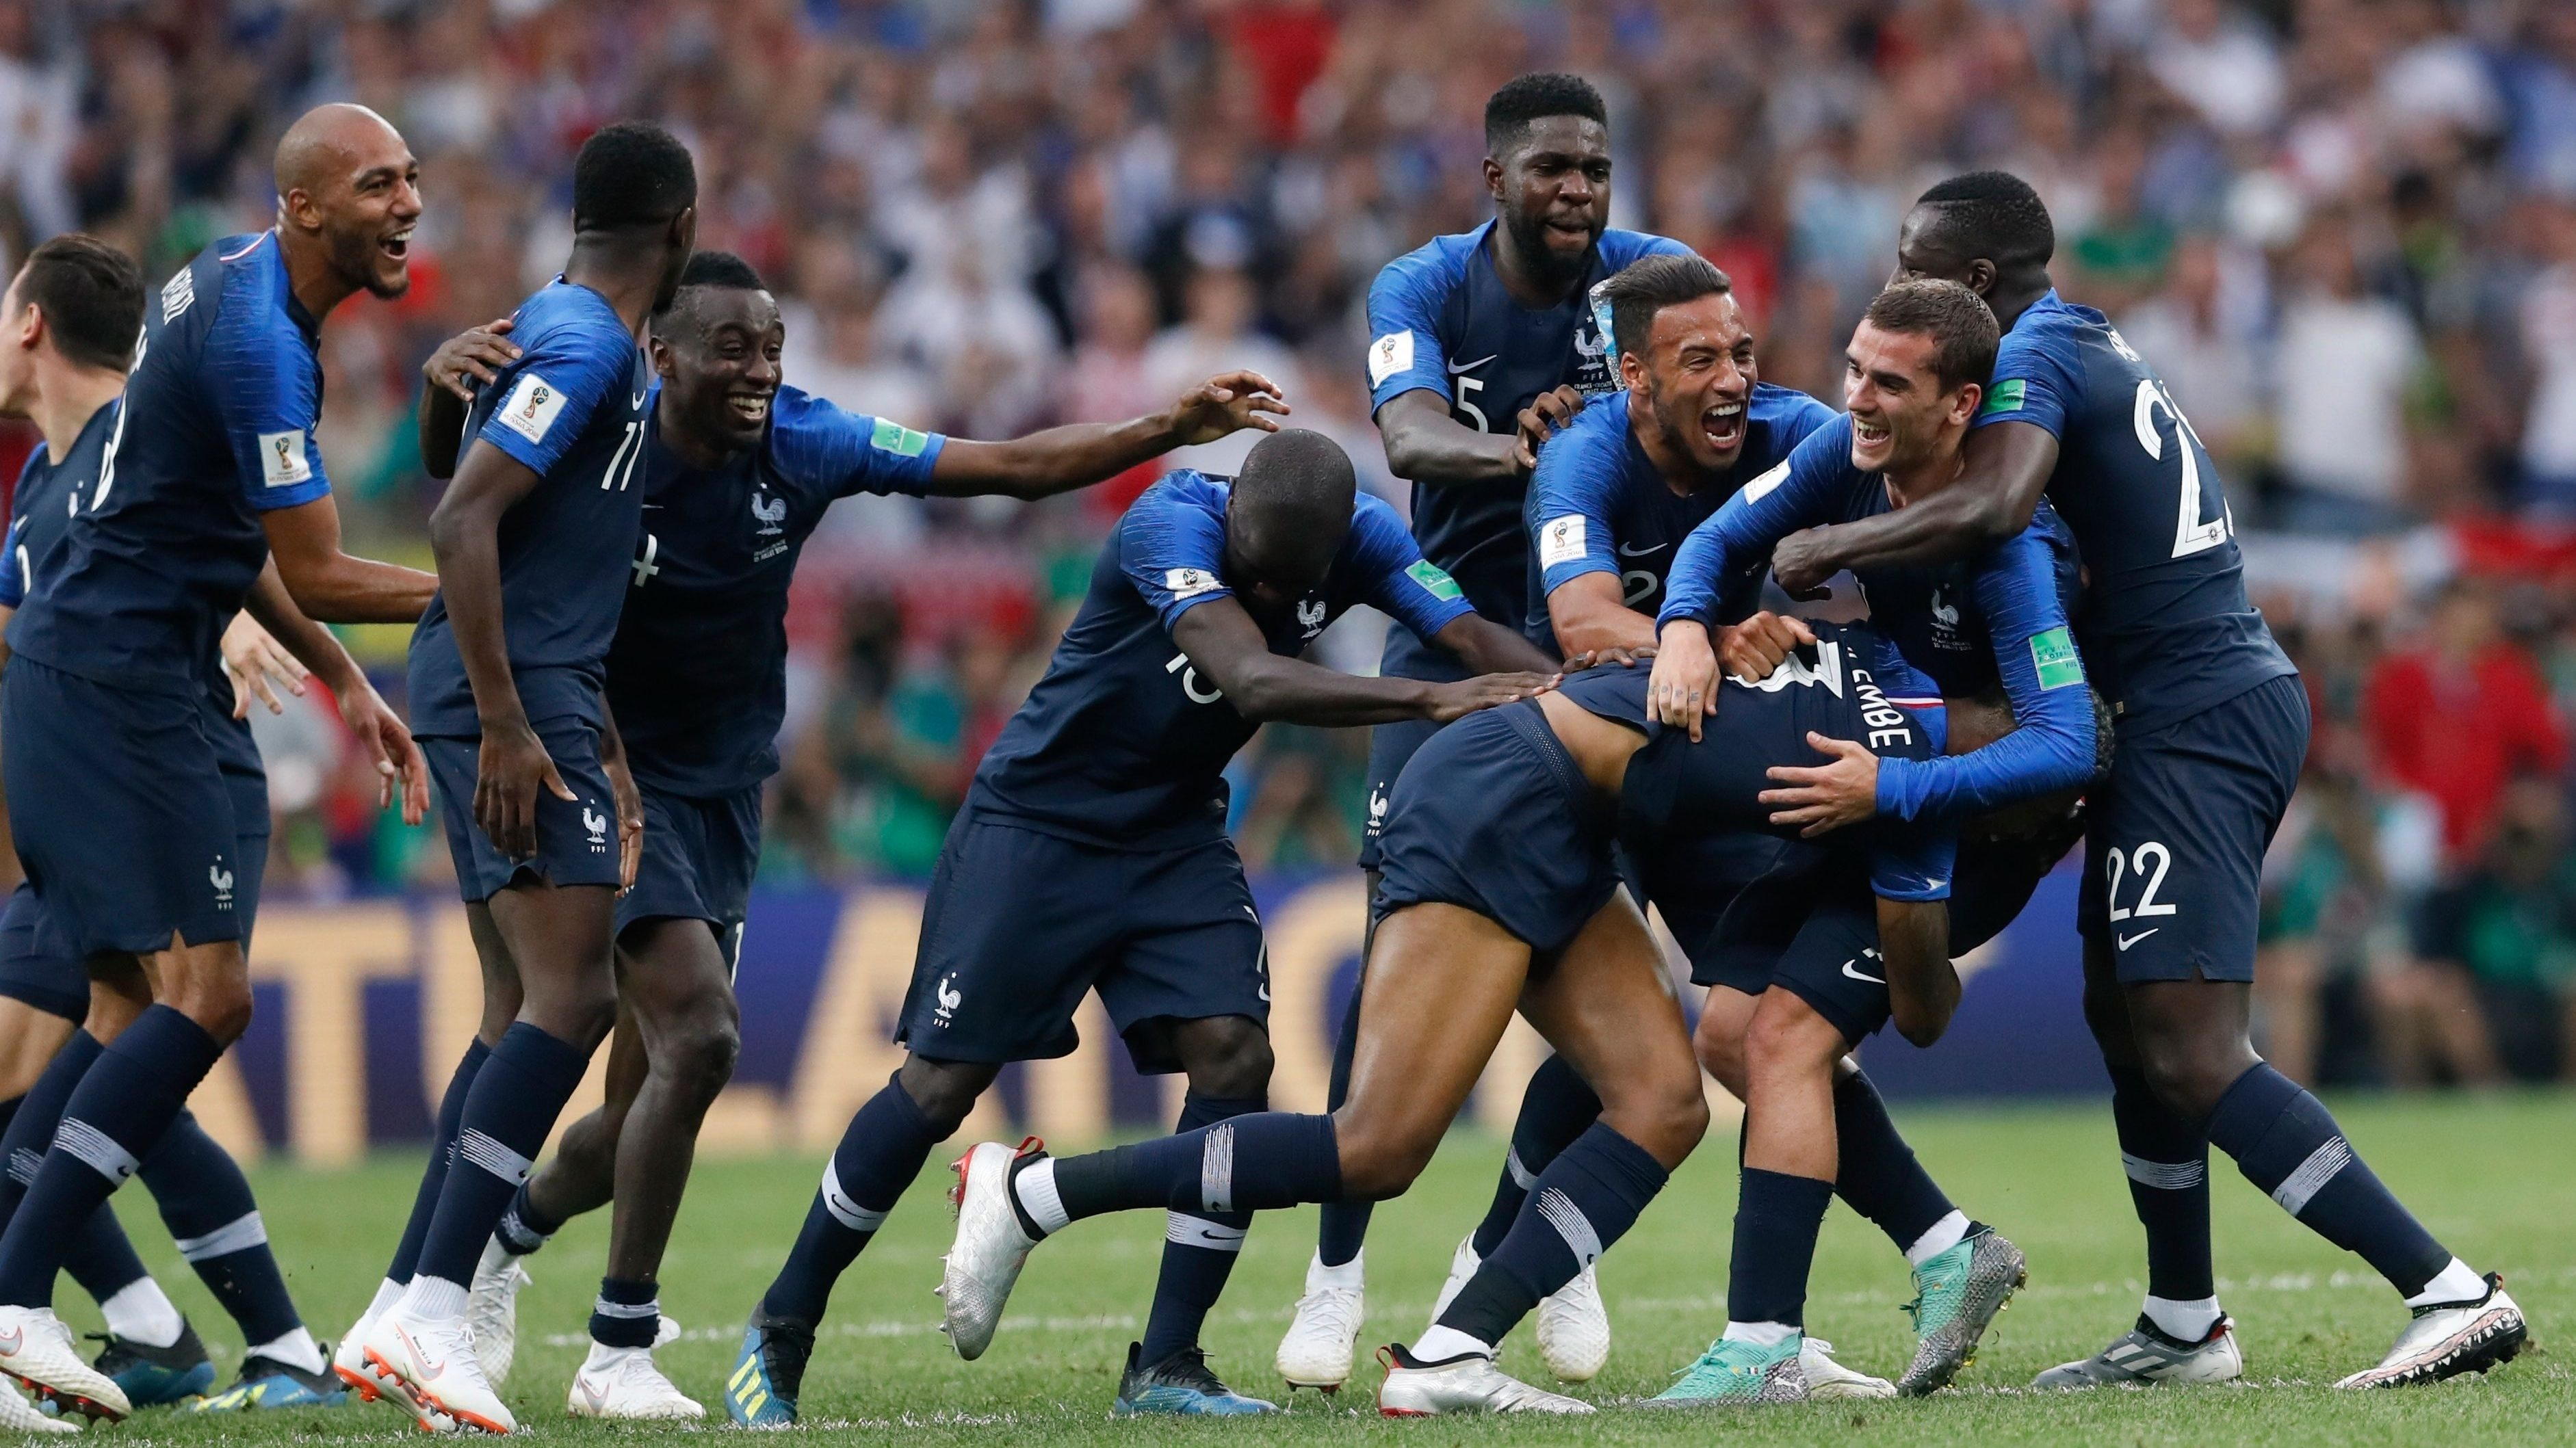 qz.com - freelanceqz - France's World Cup soccer players are as African as they want to be